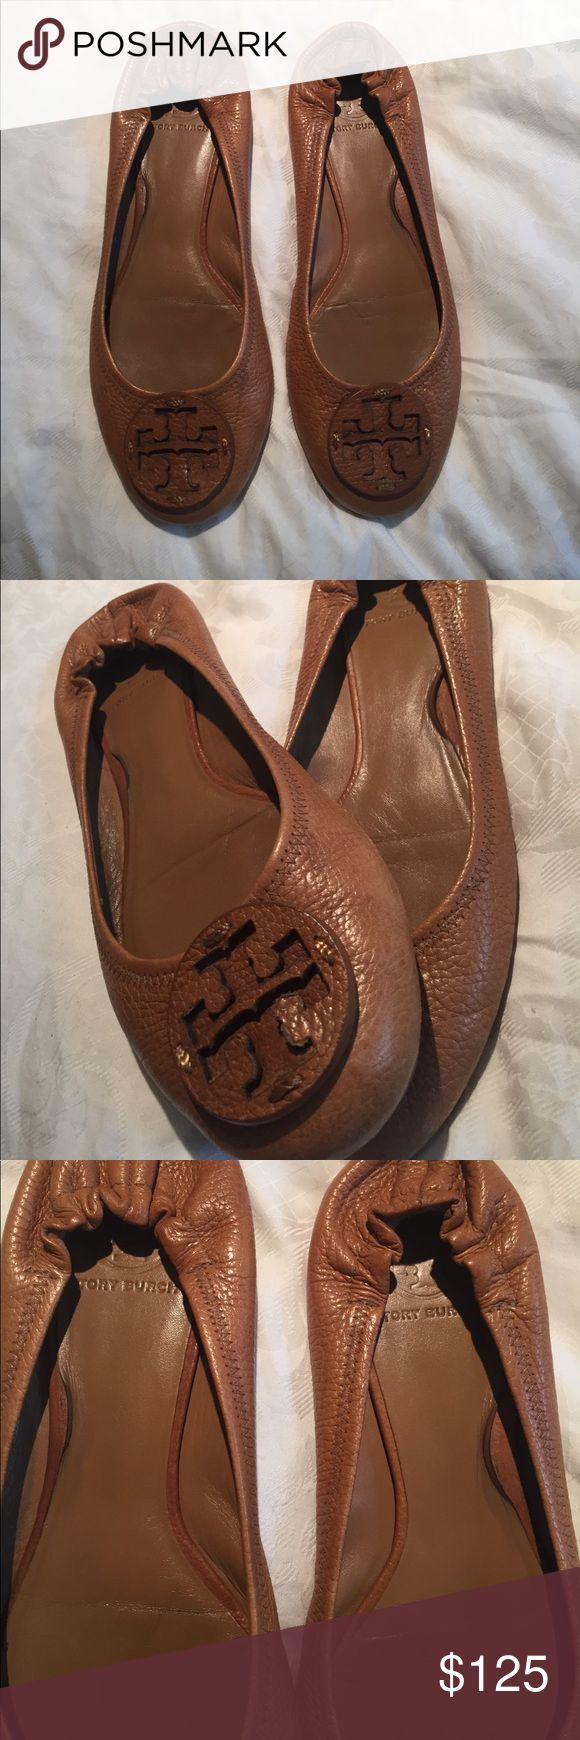 Tory Burch Tan Flats - Size 10/10.5 Tory Burch Tan Flats - soles are slightly worn, but these shoes are in great condition! Tory Burch Shoes Flats & Loafers